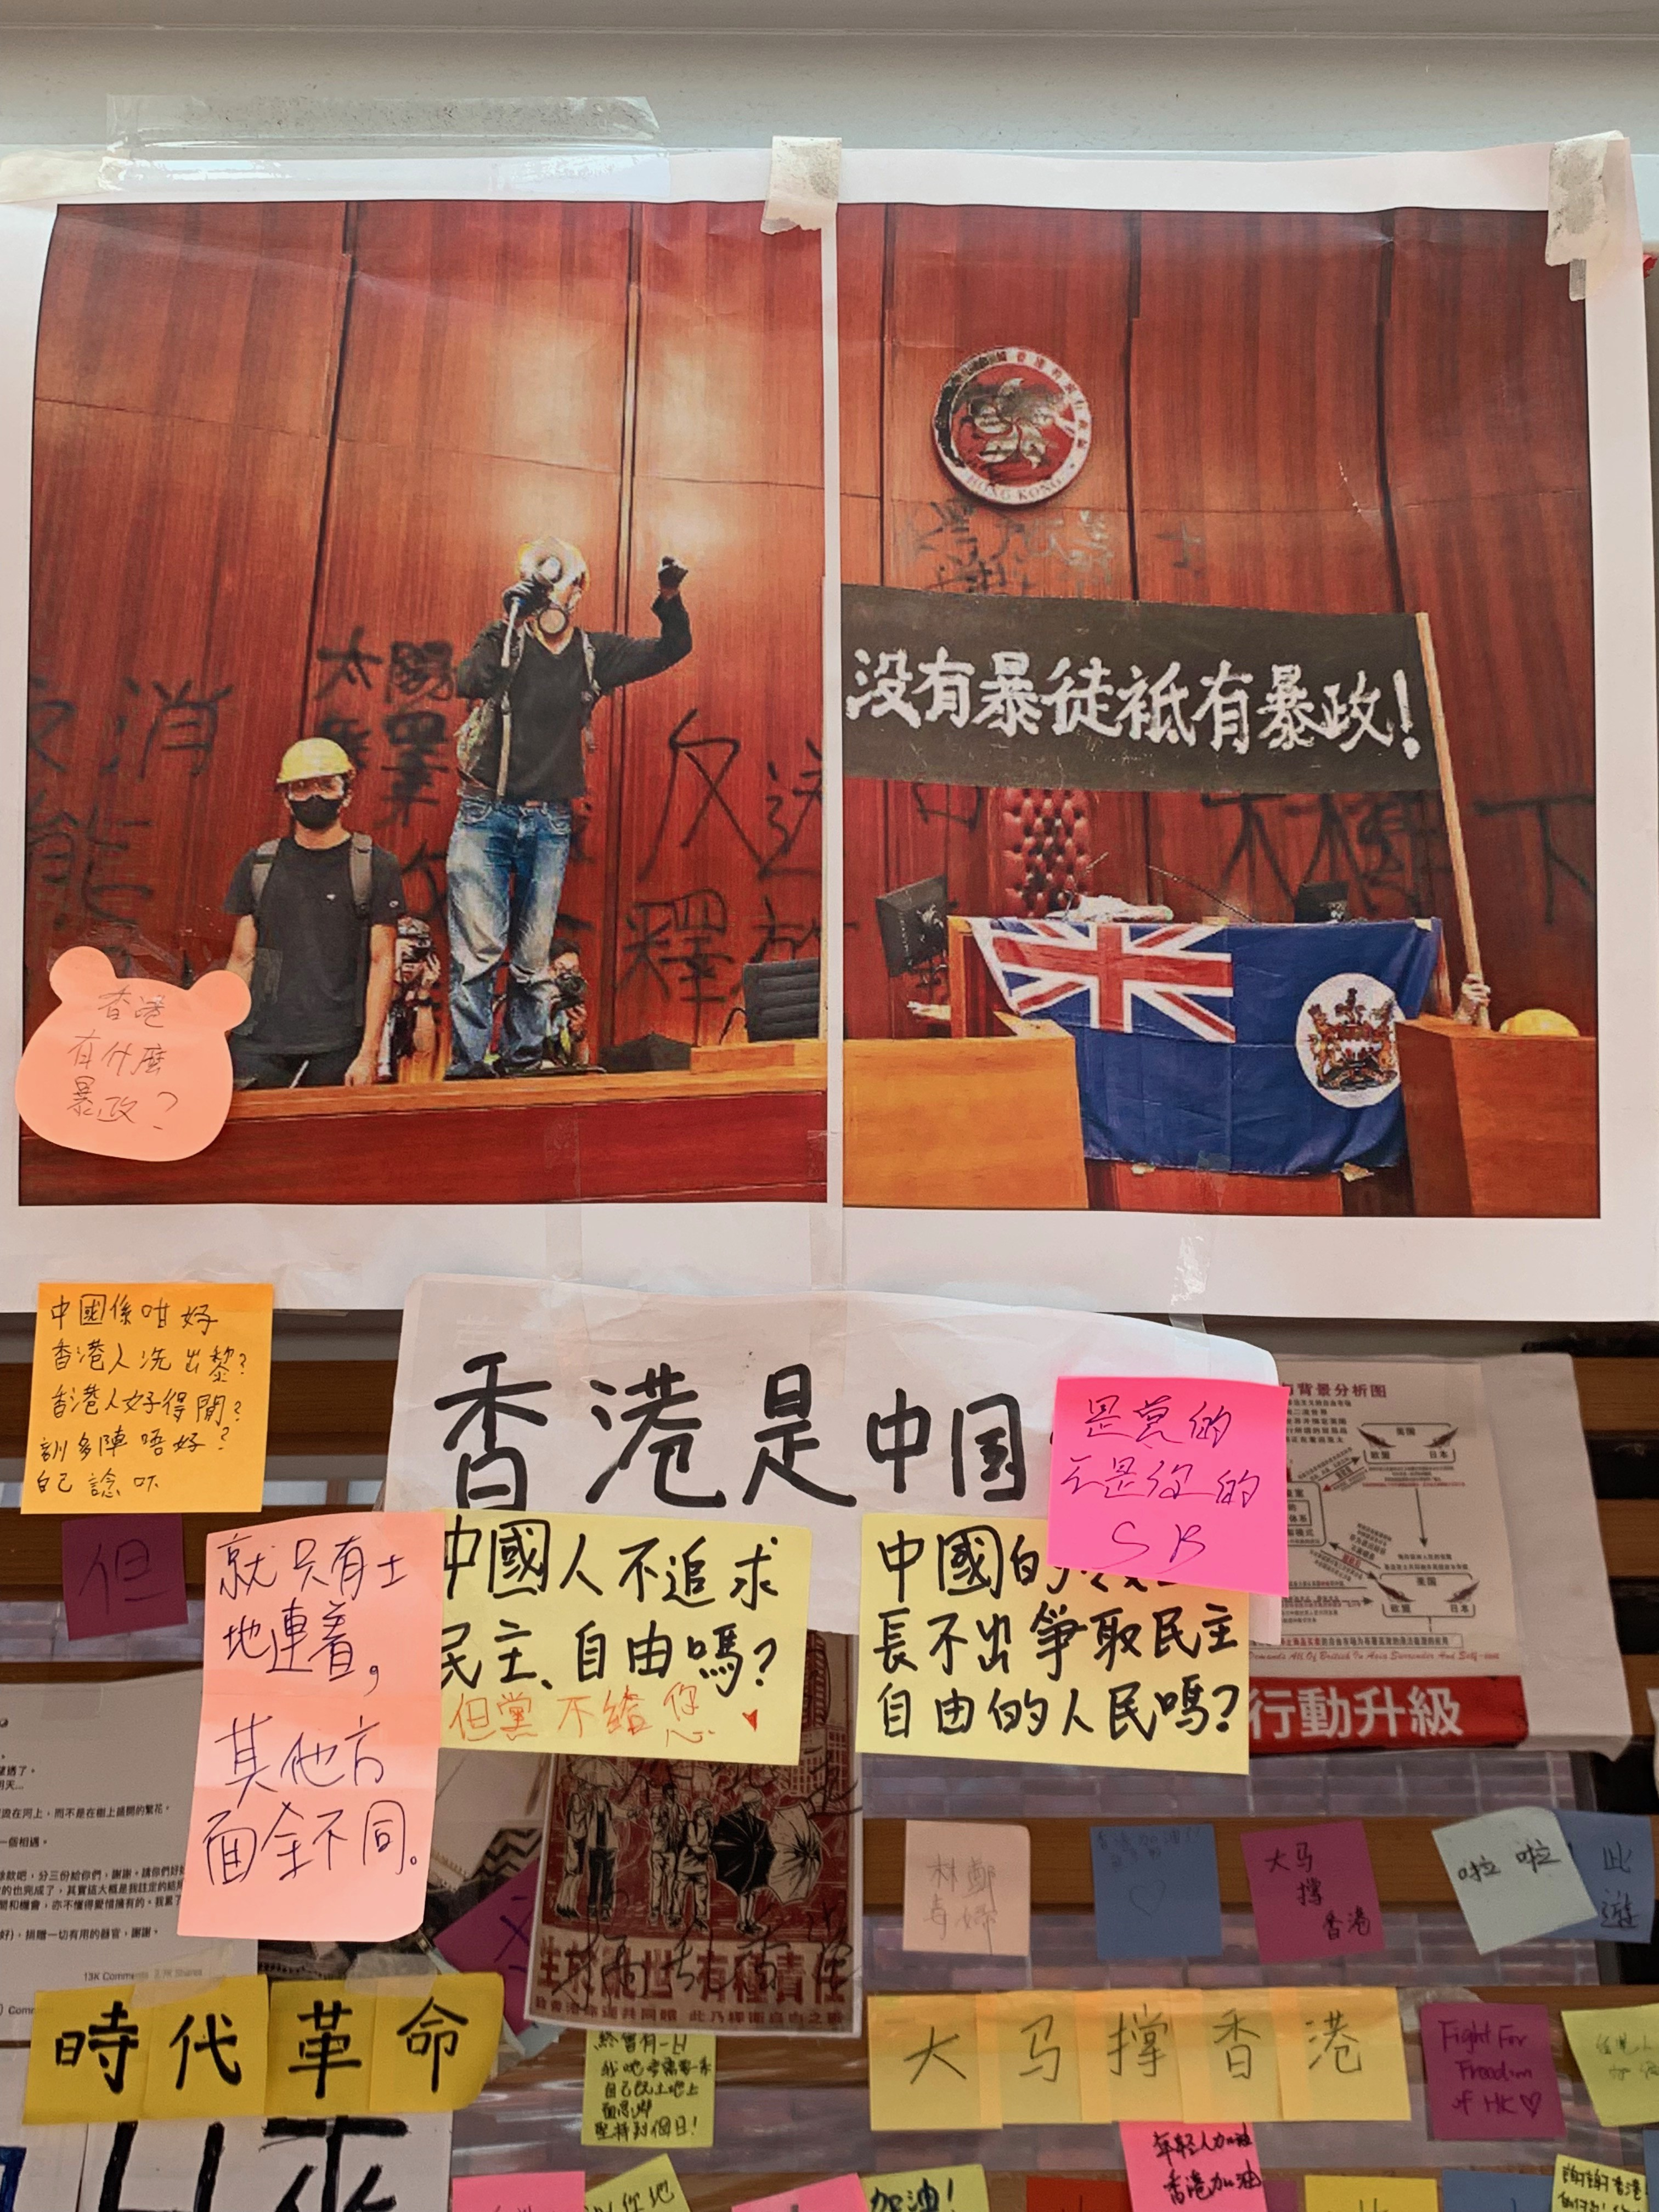 Pictures of LegCo break-in juxtaposed with comments on a Lennon Wall at the University of Hong Kong.